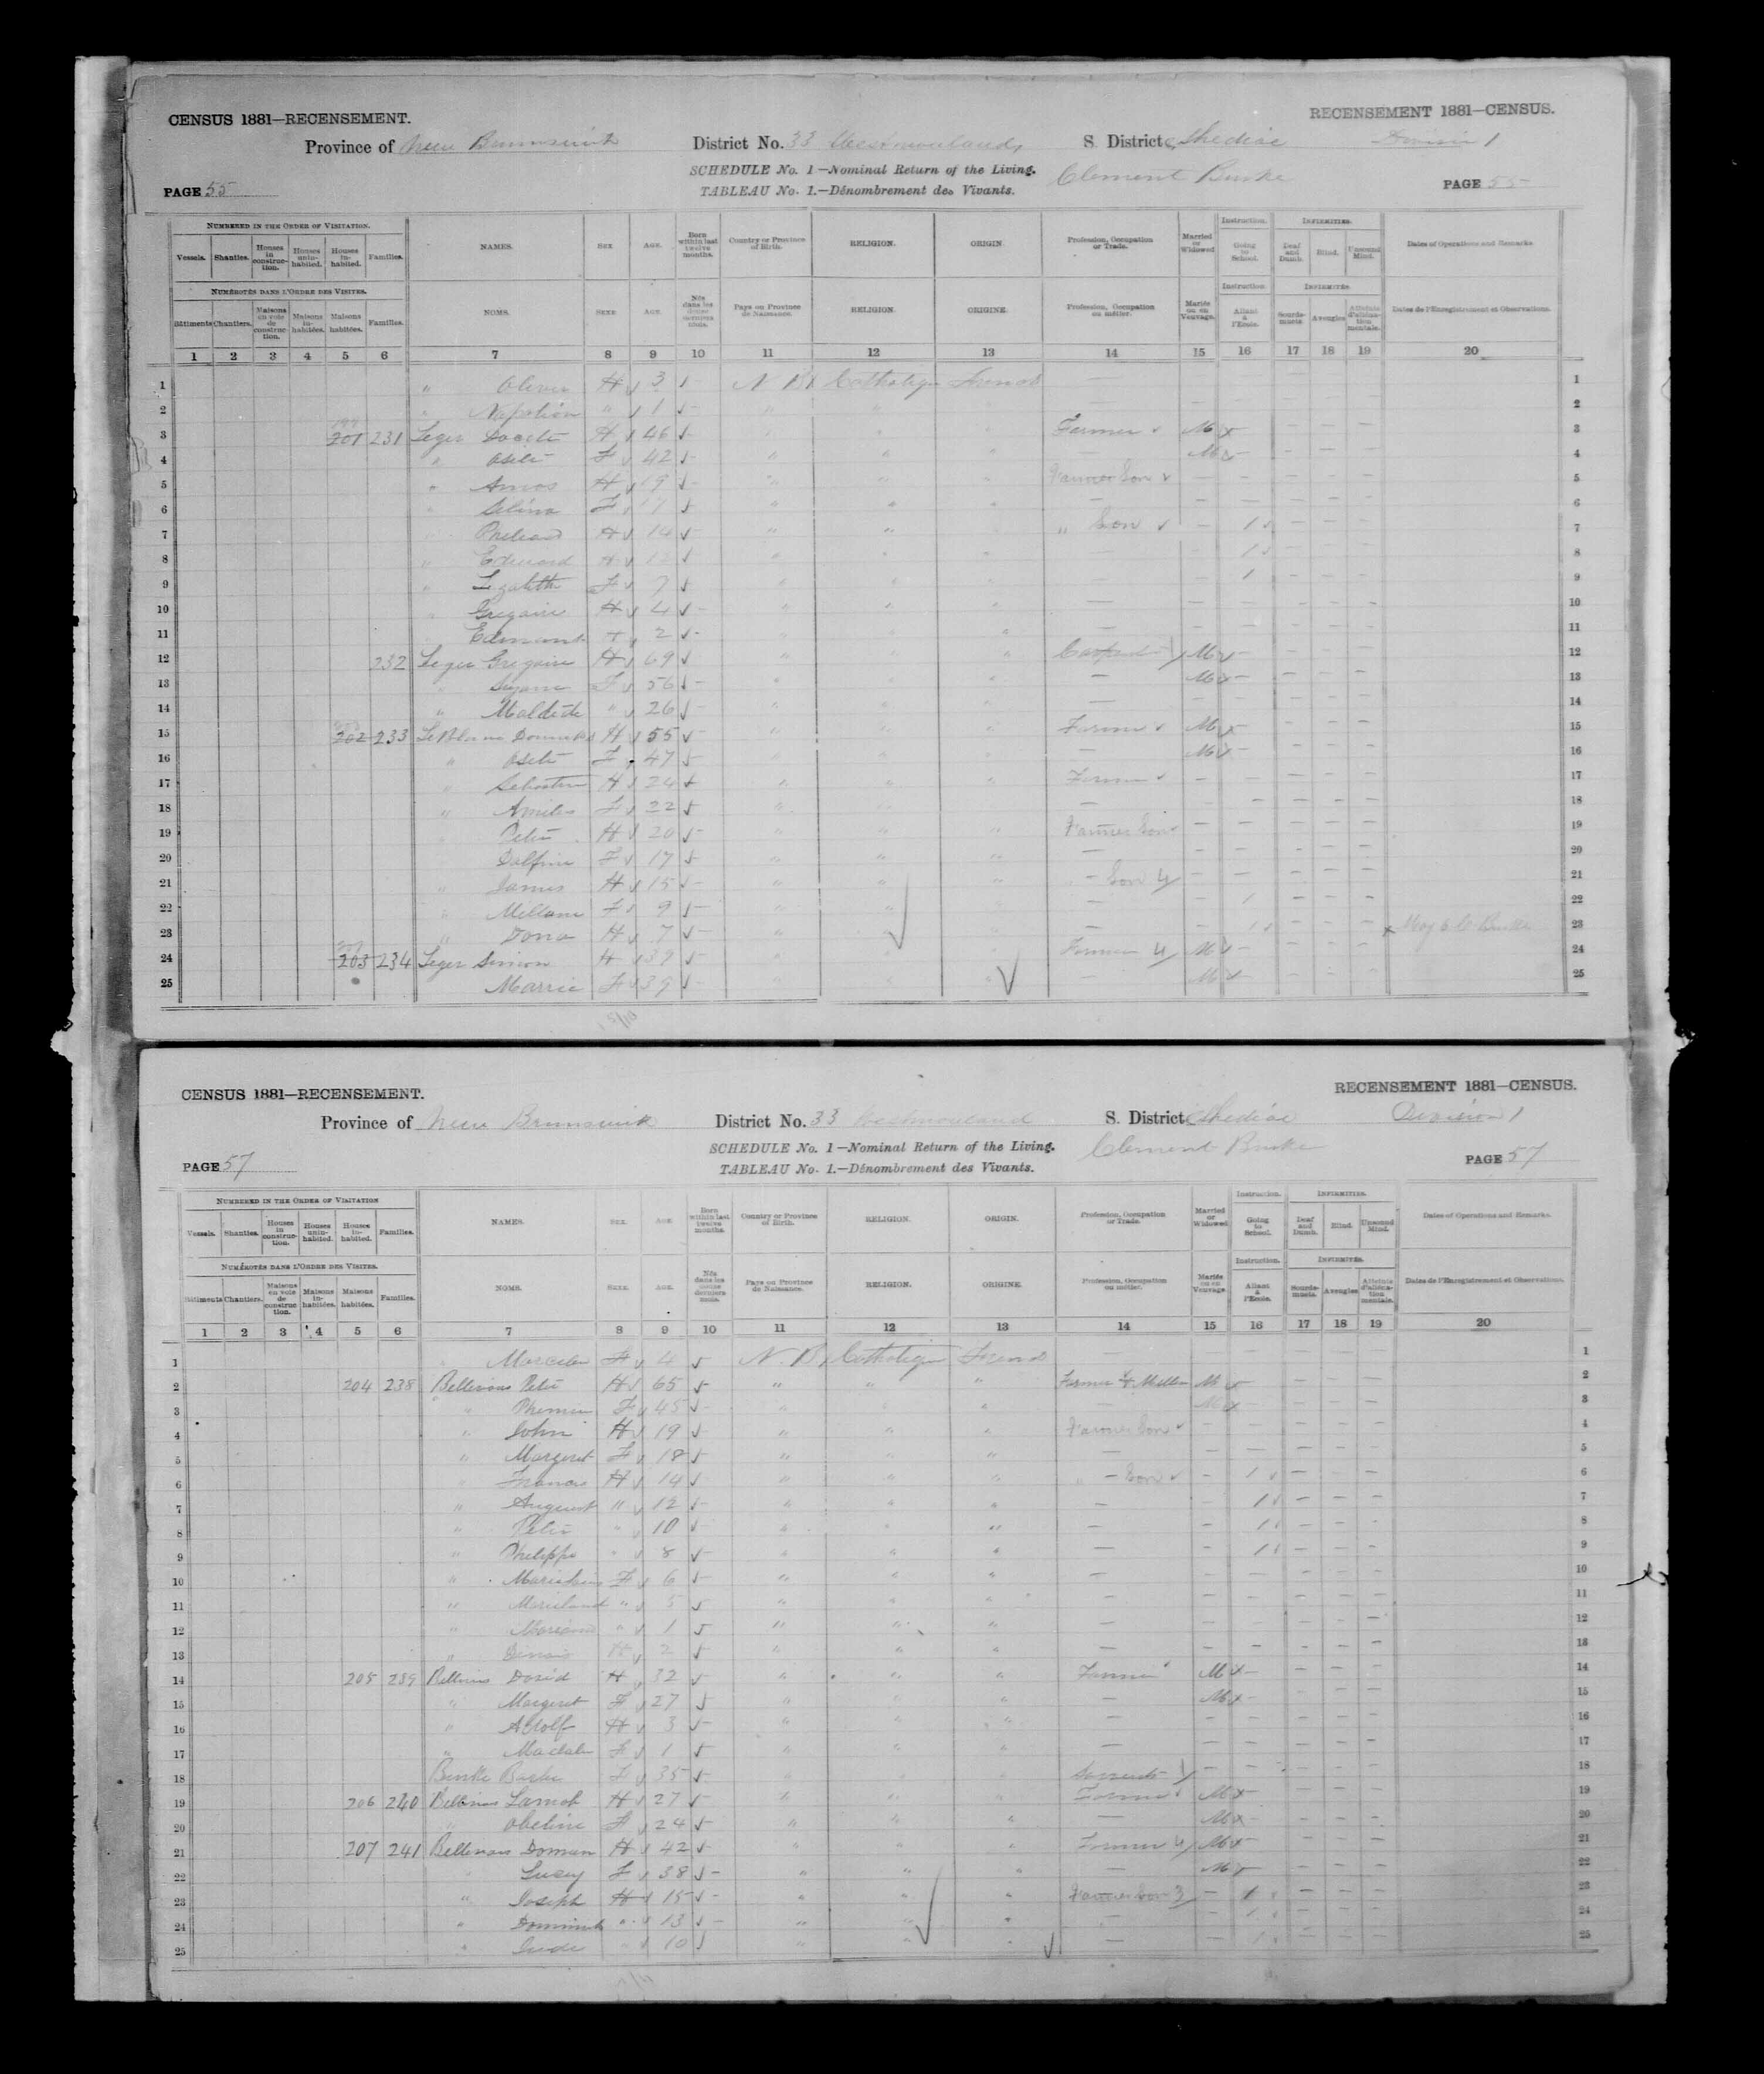 Digitized page of Census of Canada, 1881, Page number 55, for Docite LEGER